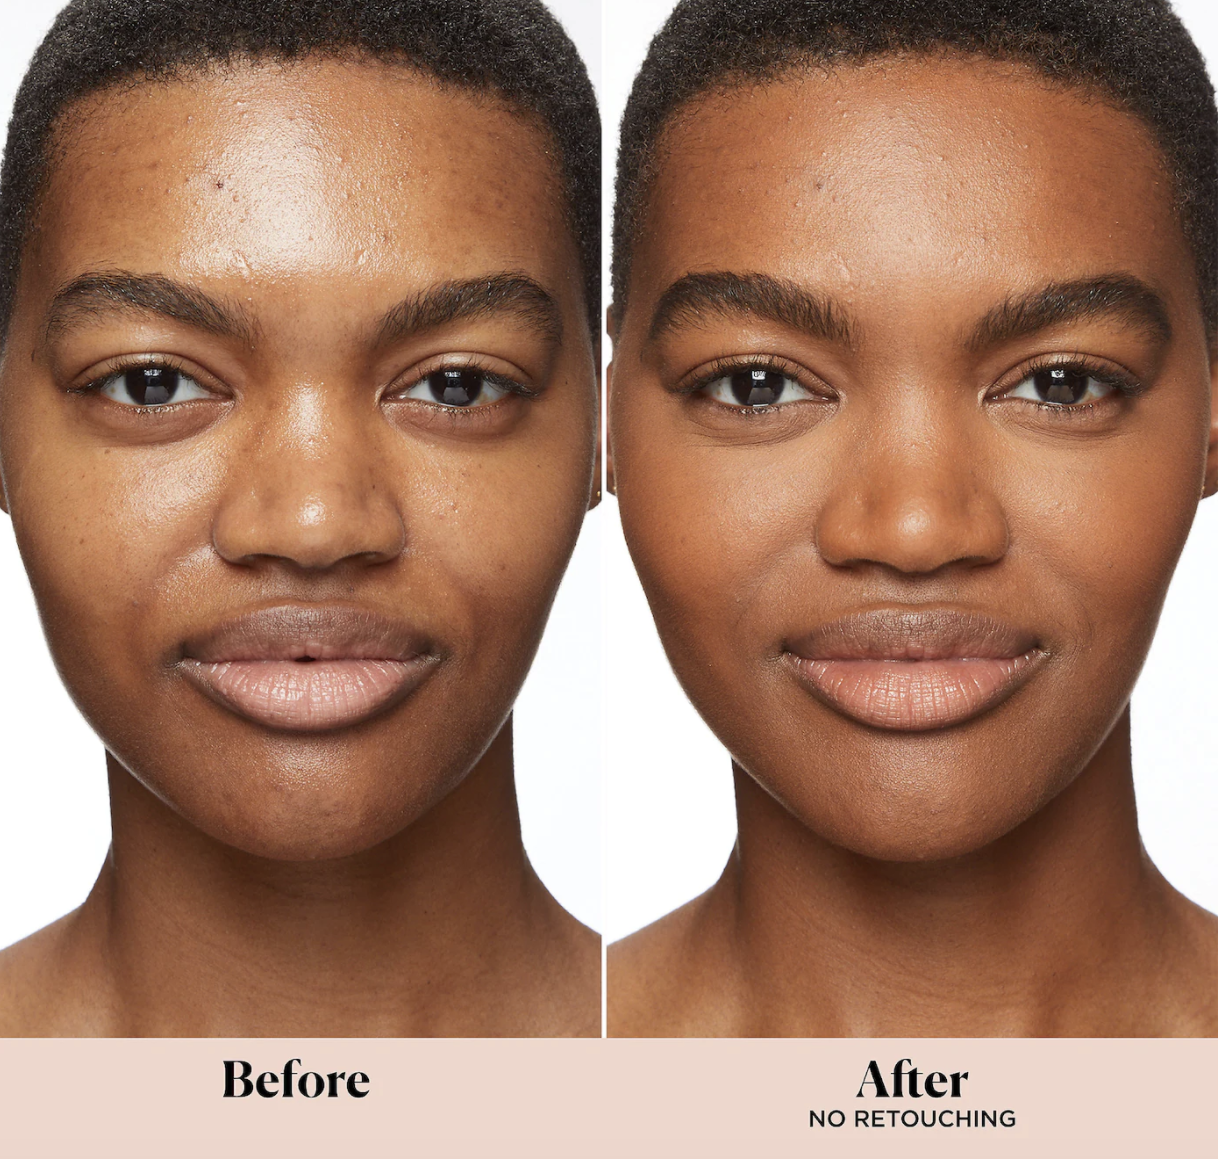 Model with before and after applying the tinted moisturizer